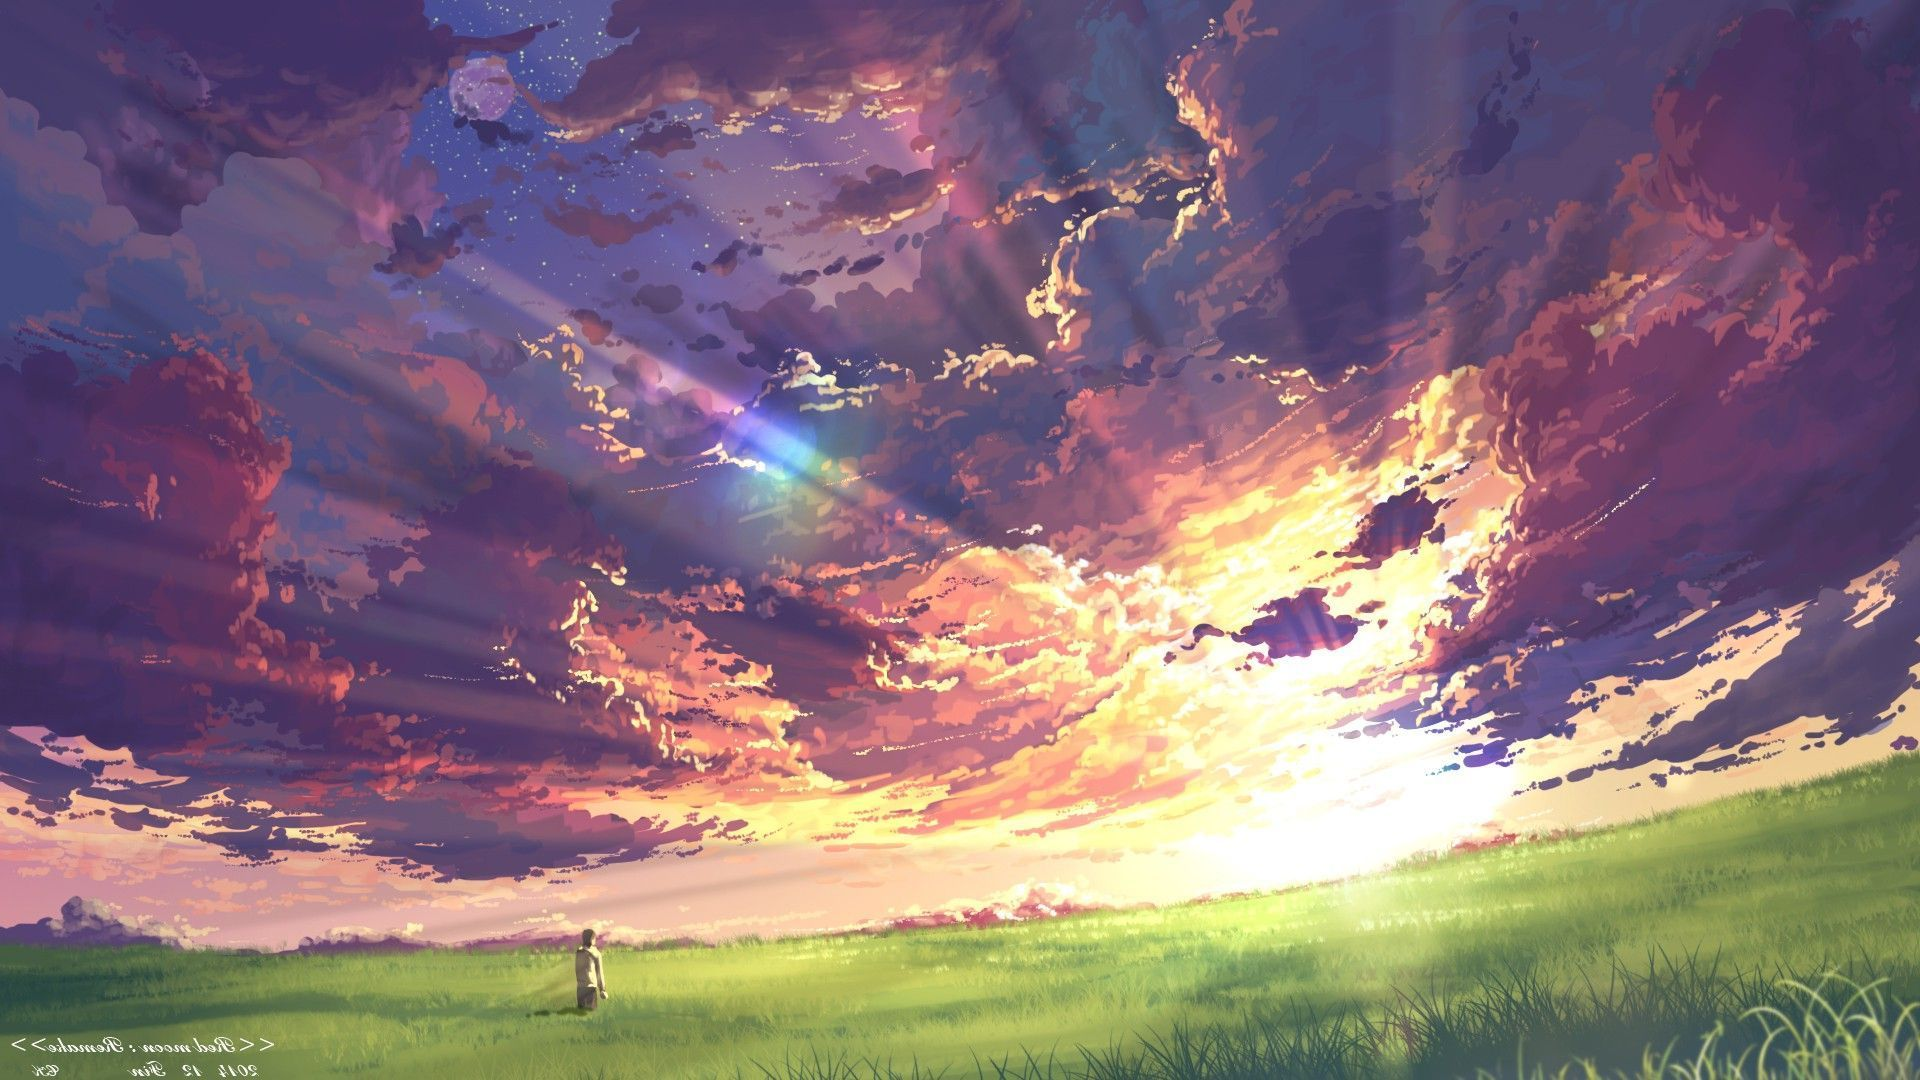 60+ Anime Sunset Wallpapers Download at WallpaperBro